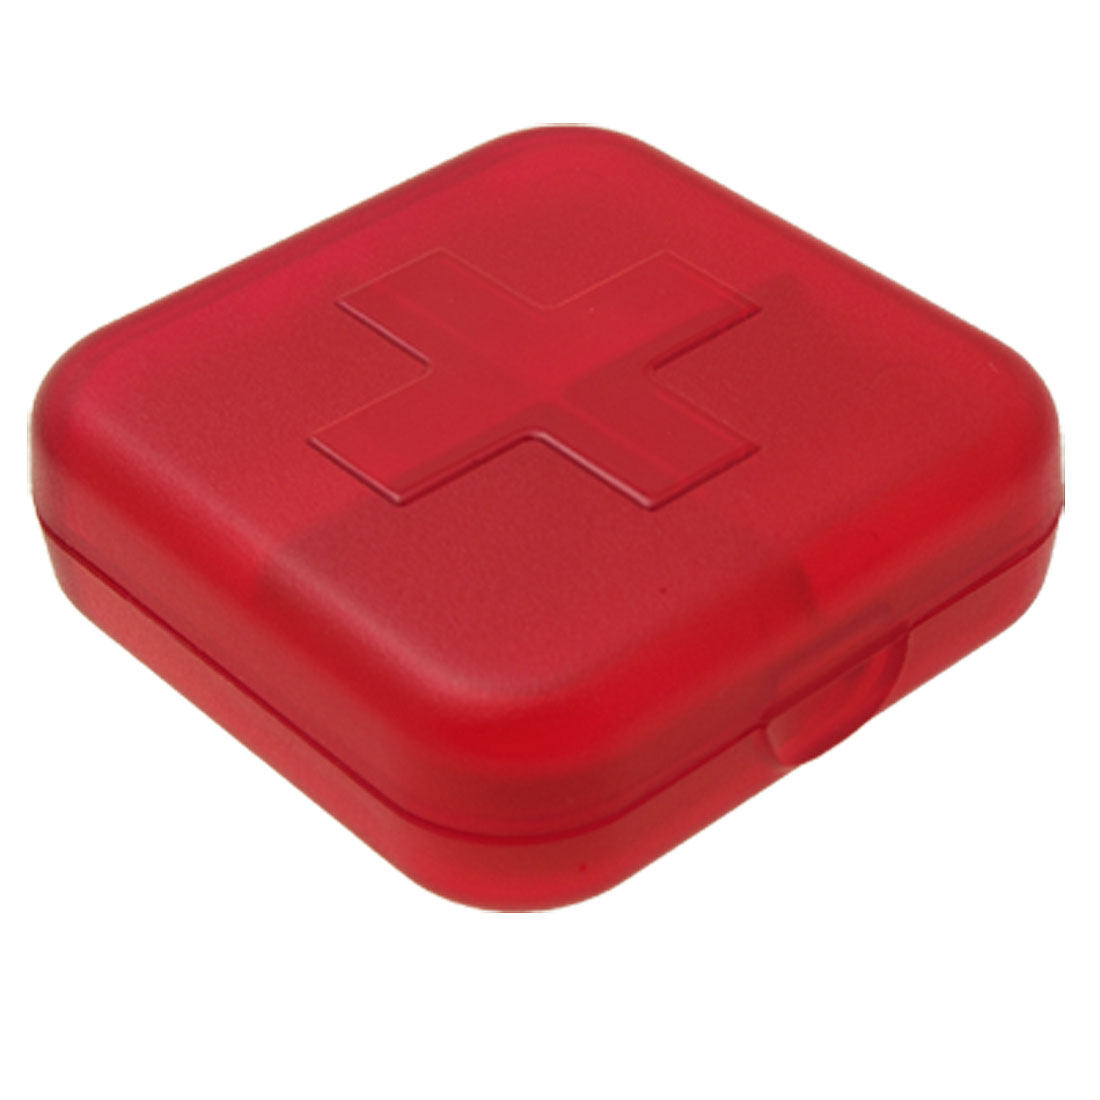 Square Plastic Red Cross Pill Box